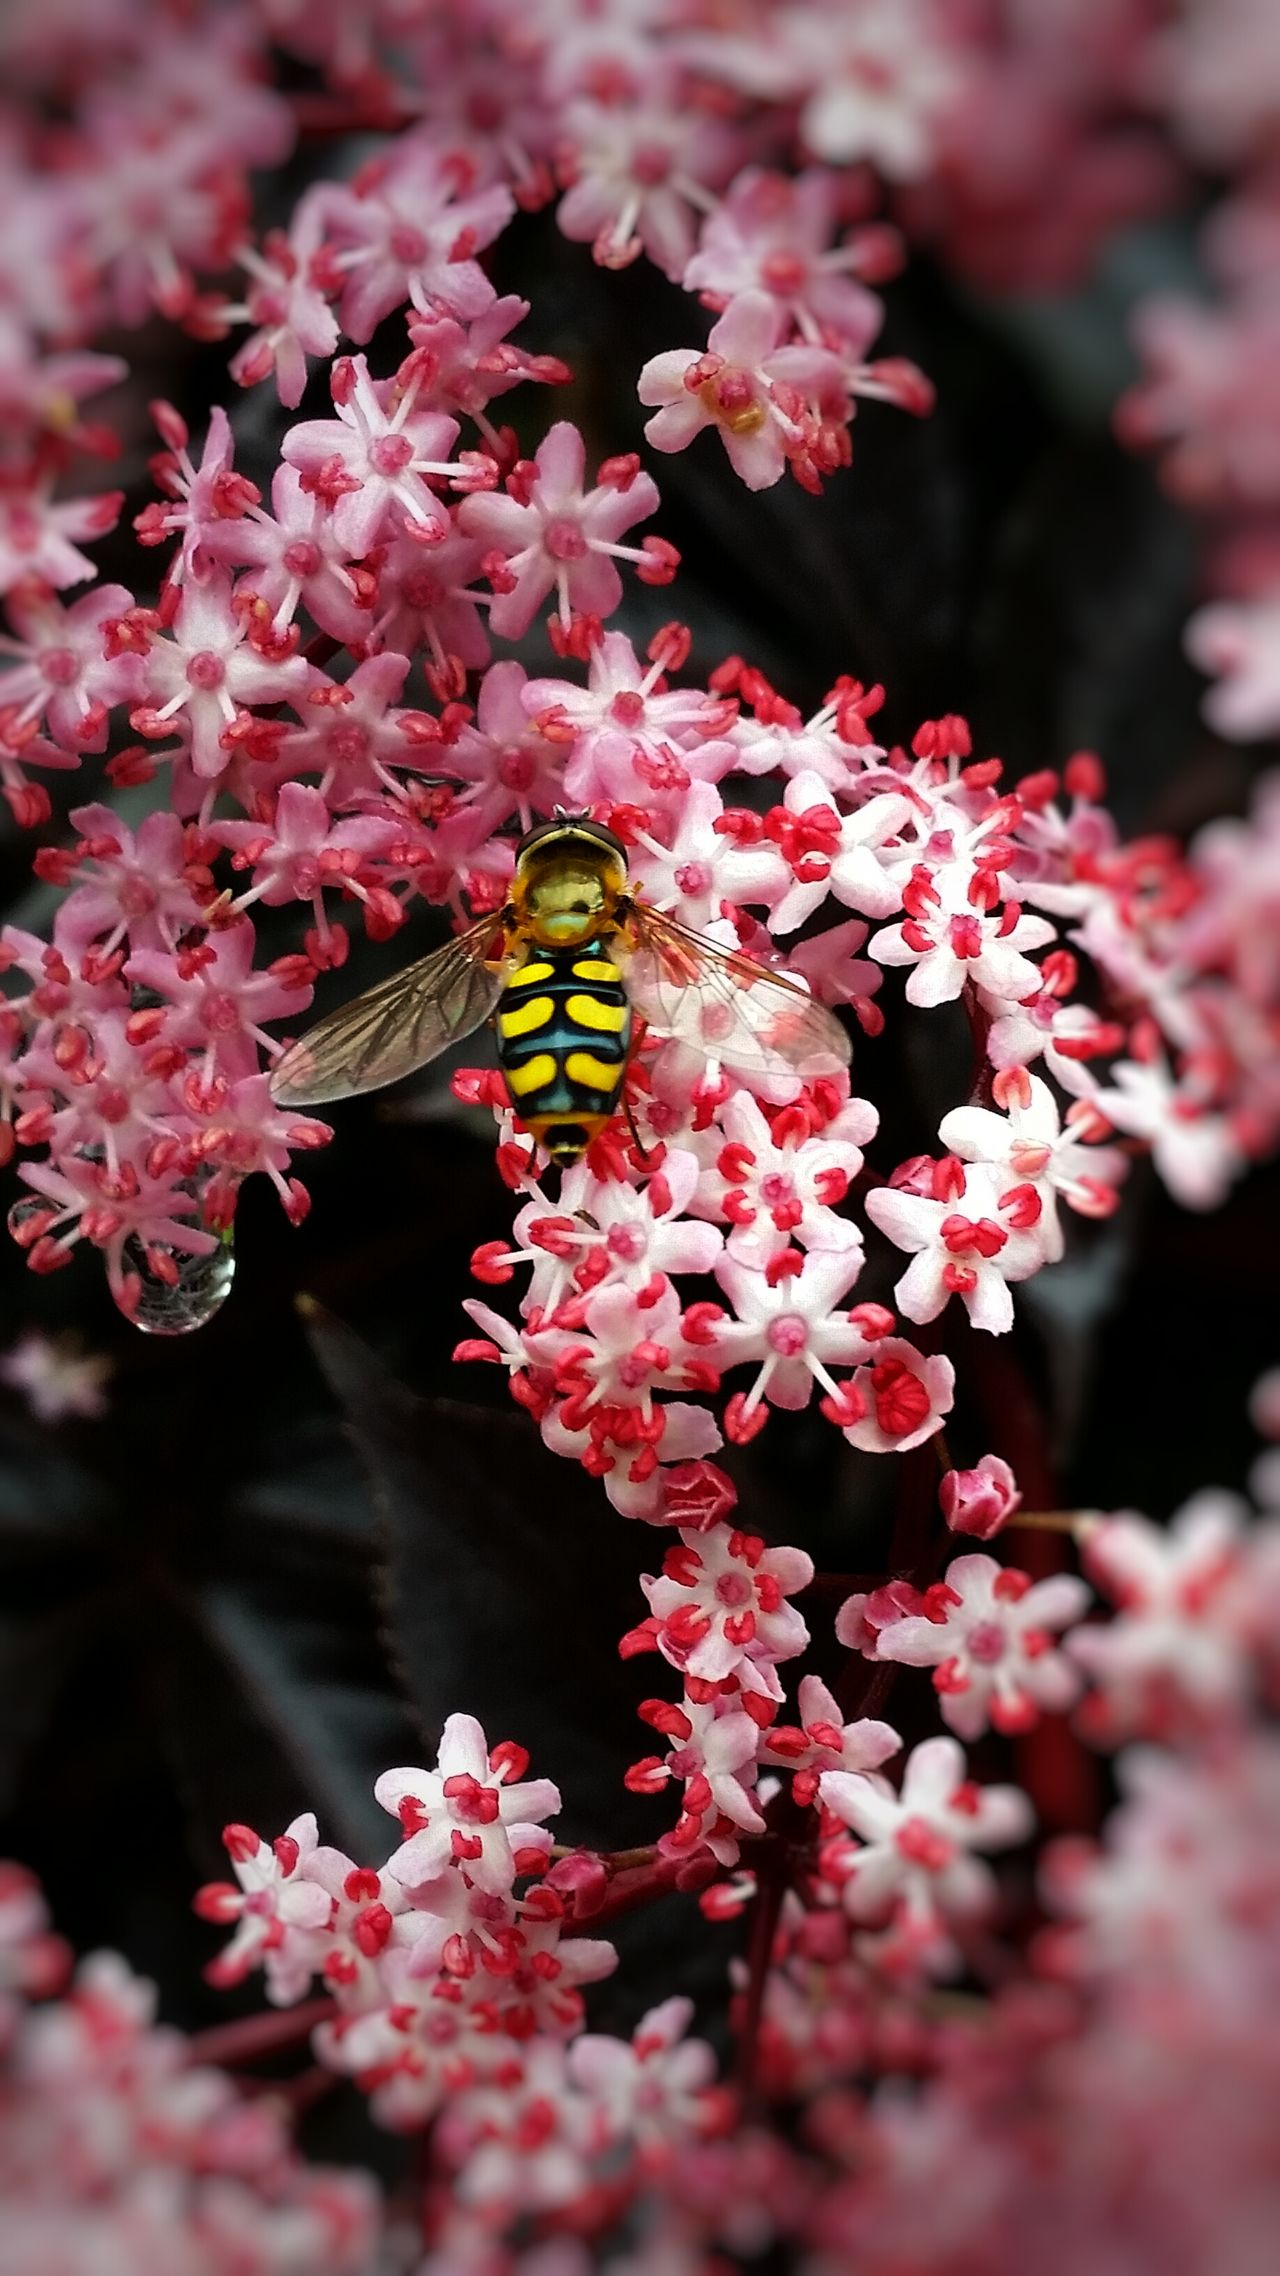 Hoverfly (Flowerfly) on Elderflower. 43 Golden Moments [Syrphidae on Sambucus nigra] I was practicing a few close up shots of my Purple-Leaved Elderflower and this gorgeously marked Hoverfly flew by for a sip of nectar. I only got chance for the one shot. 💫💕🌸🐝🌸💕💫 Flowers, Nature And Beauty Flowers Exceptional Photographs EyeEm Nature Lover Flower Lovers Every Flower Is A Soul Eye4photography  Striving For Excellence Nature Photography EyeEm Masterclass Colourful Nature England 🌹 Flower Photography Colorful Insects  Flying Insects Showcase June Things With Wings  EyeEm Best Shots Malephotographerofthemonth EyeEm Best Shots - Nature